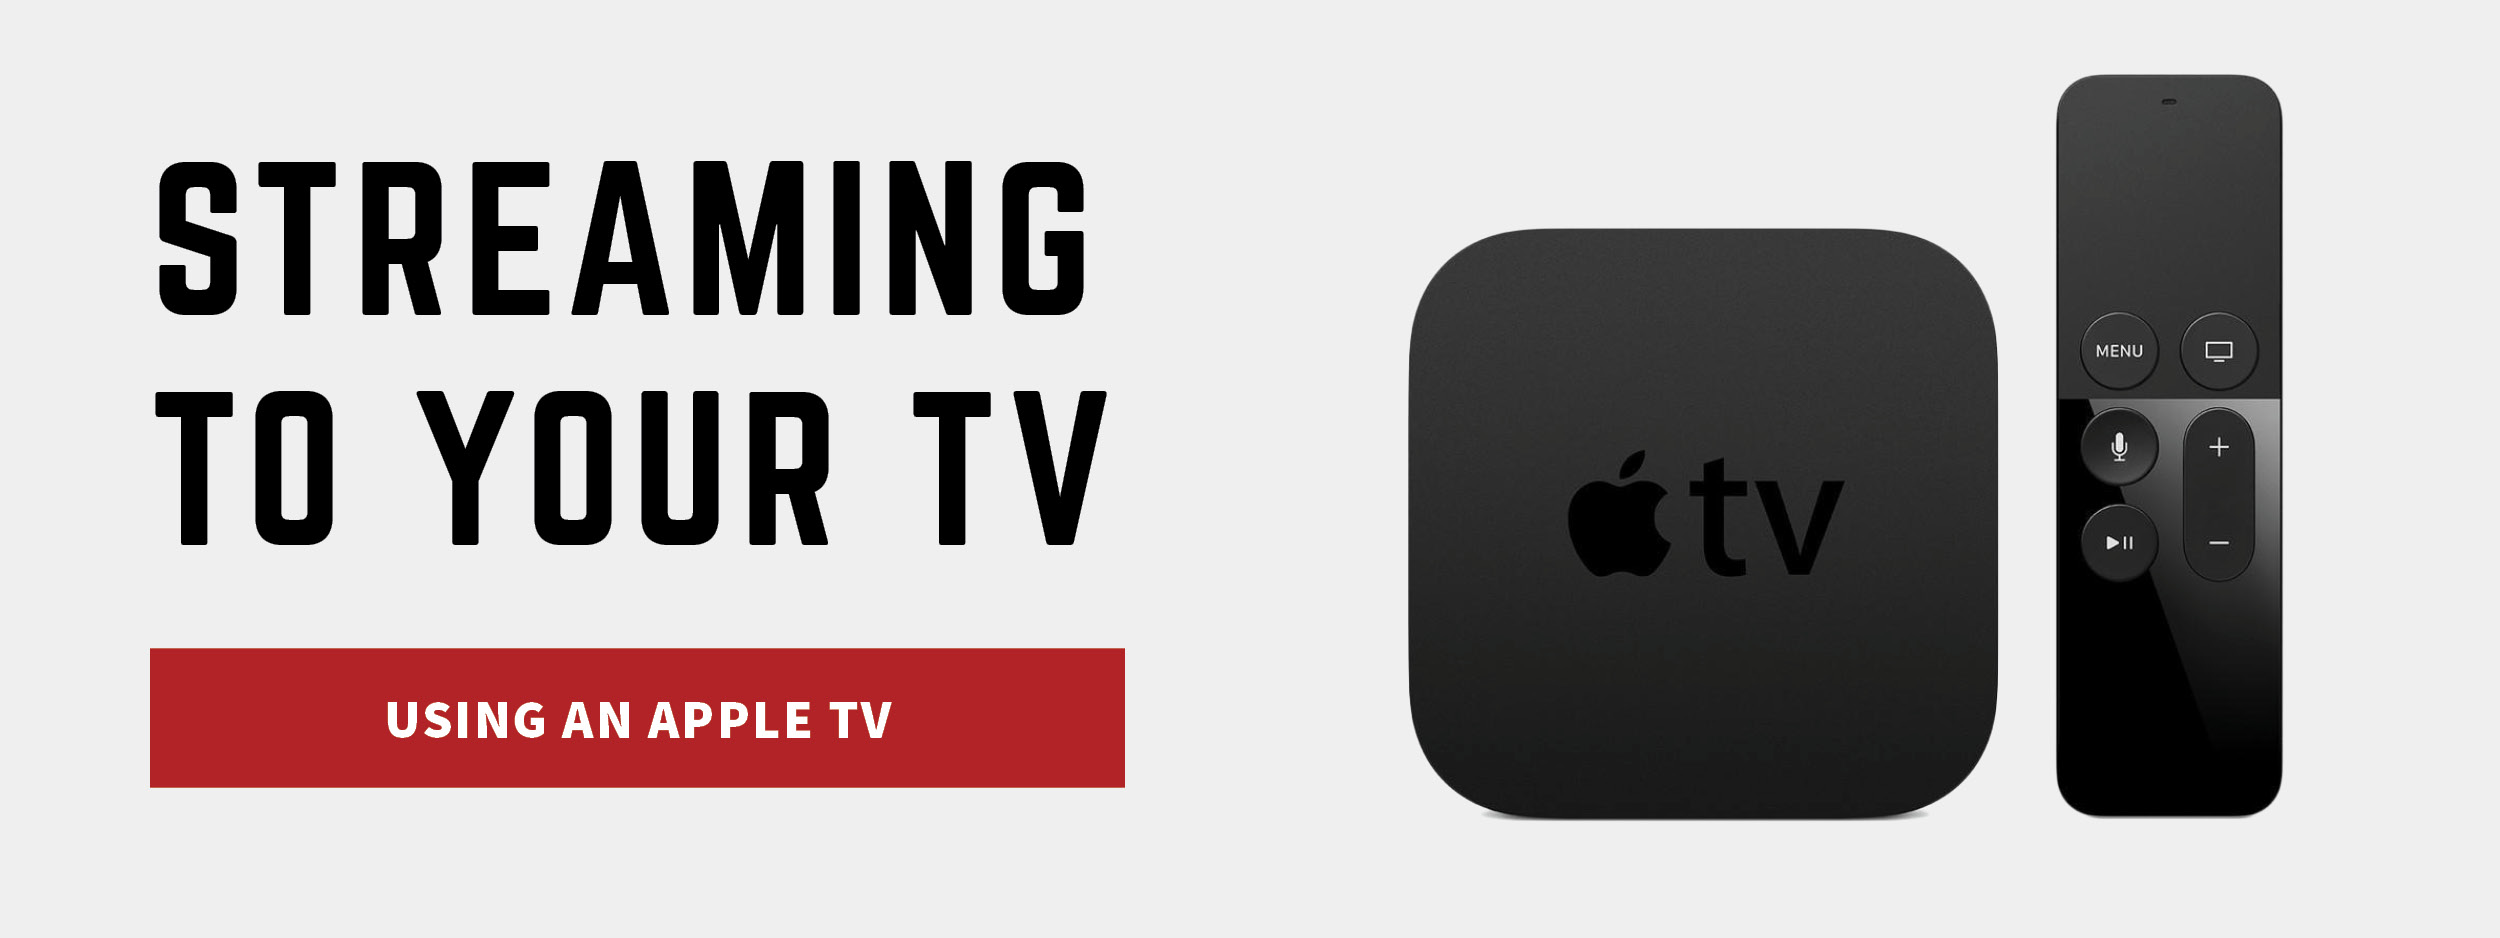 Stream using an Apple TV